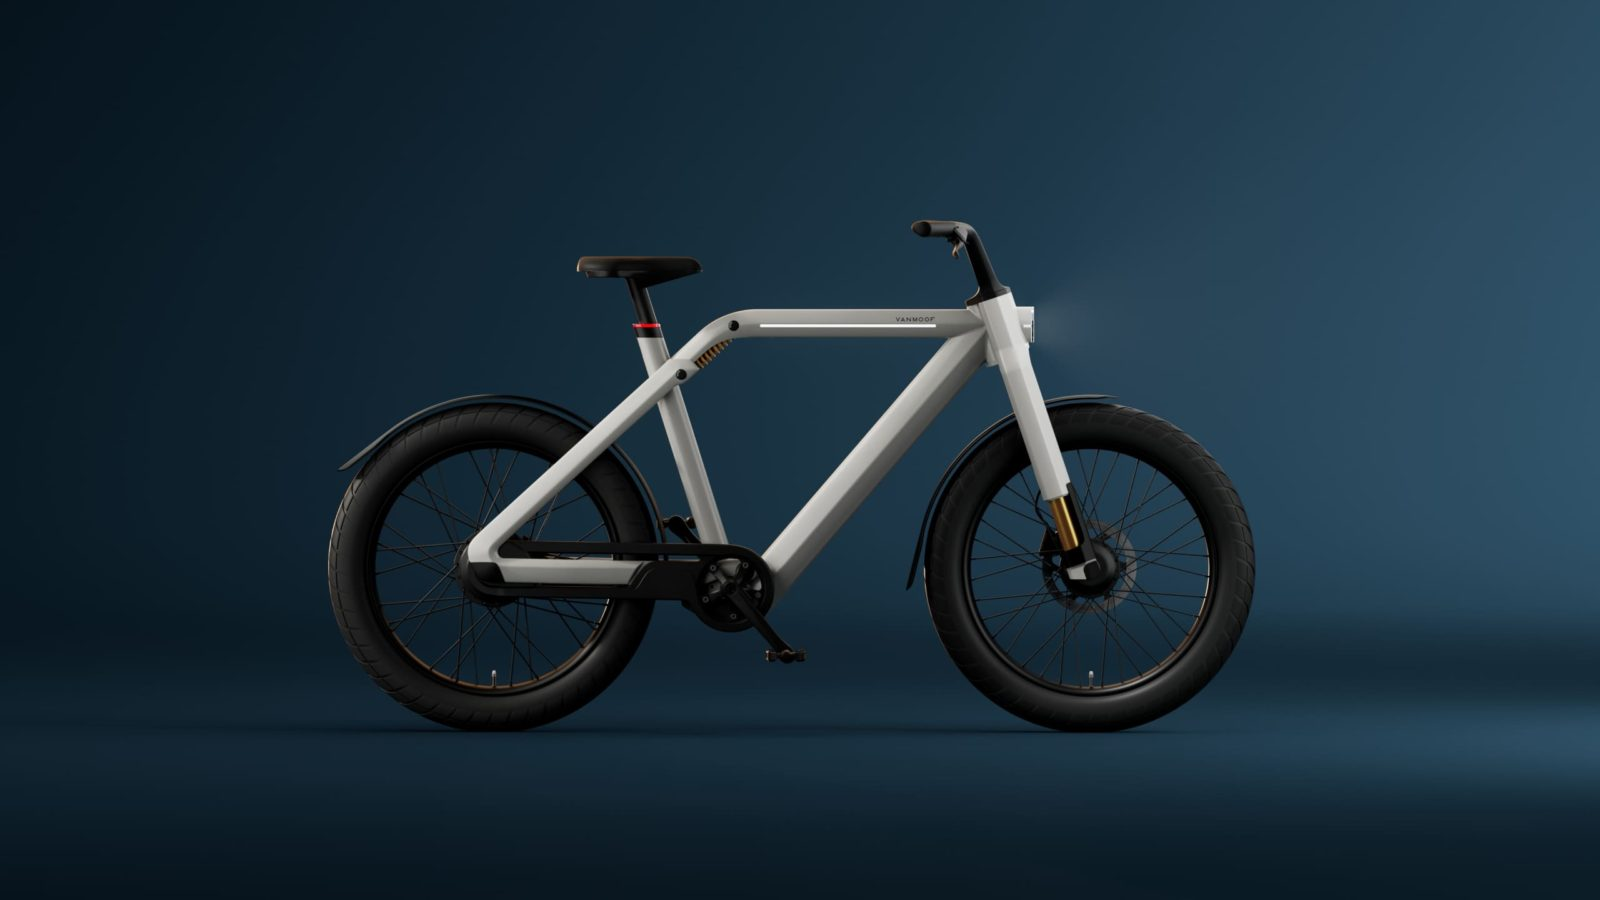 vanmoof's-first-high-speed-e-bike-aims-to-replace-city-cars,-boasts-a-top-speed-of-30-mph